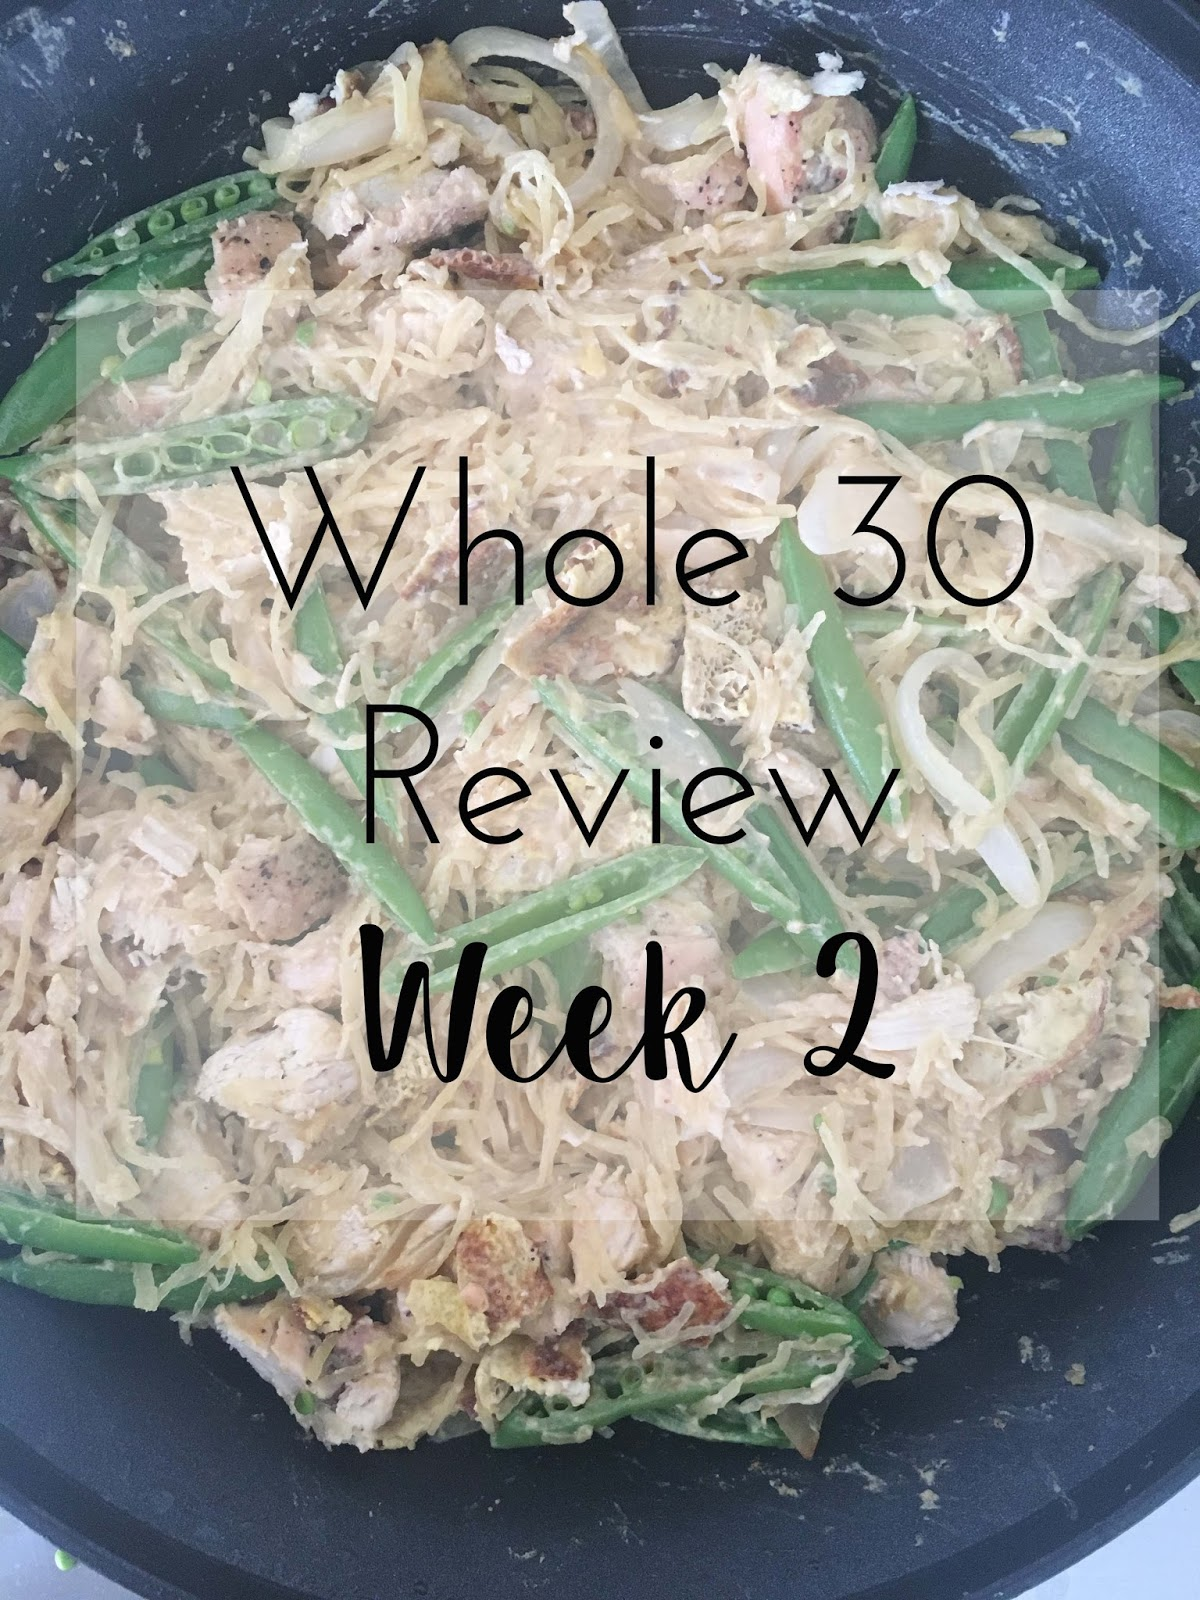 whole 30 week 2 review